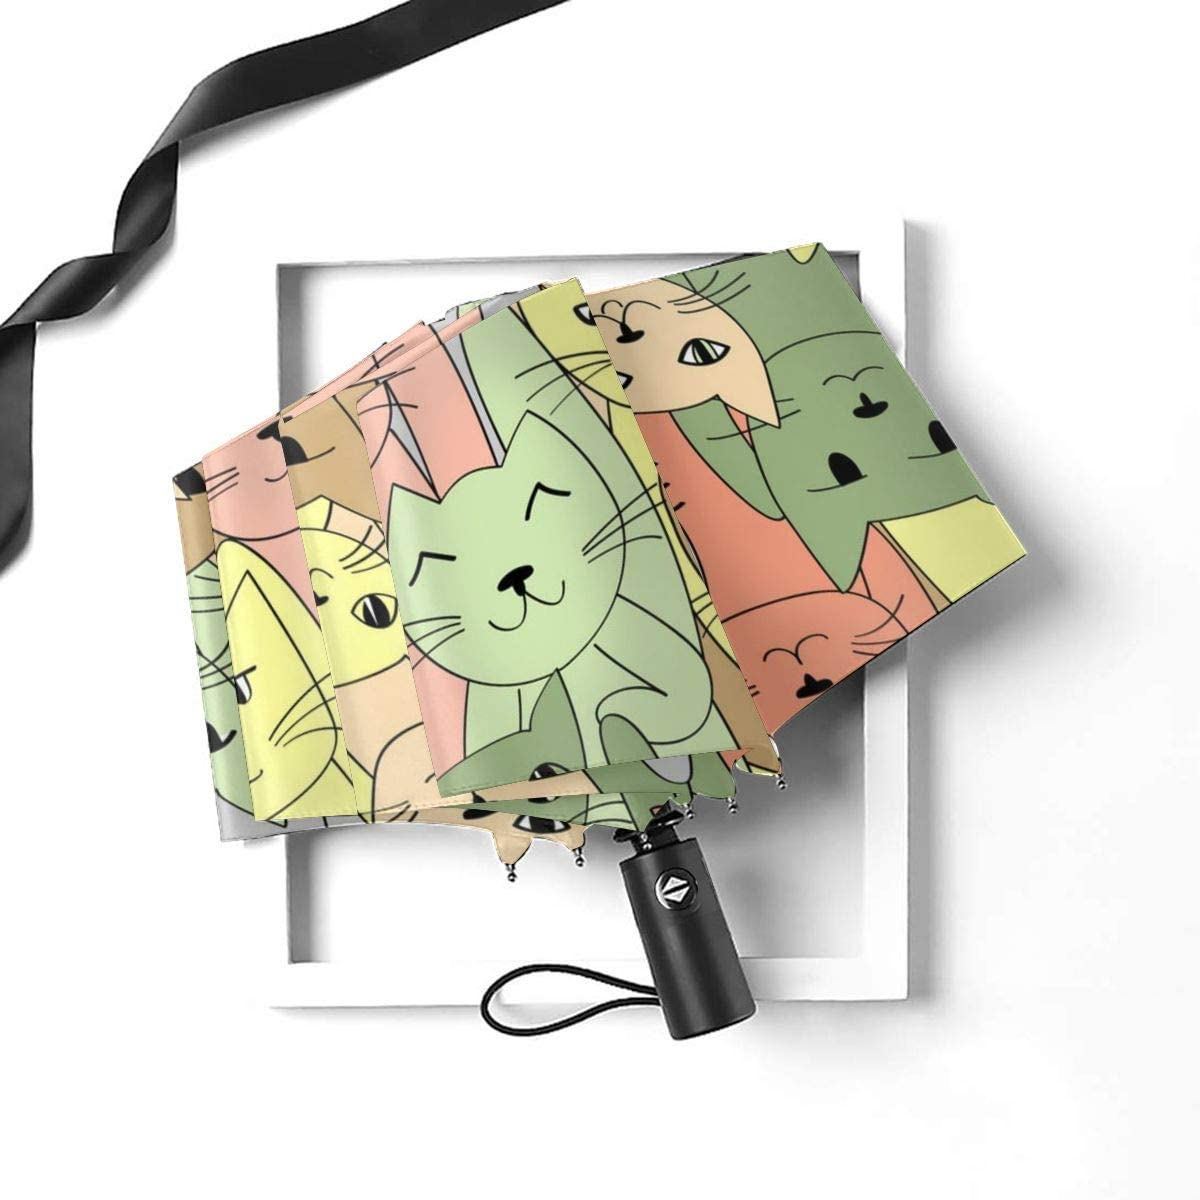 Many Cats Seamless Pattern Vector Image Compact Travel Umbrella Windproof Reinforced Canopy 8 Ribs Umbrella Auto Open And Close Button Personalized